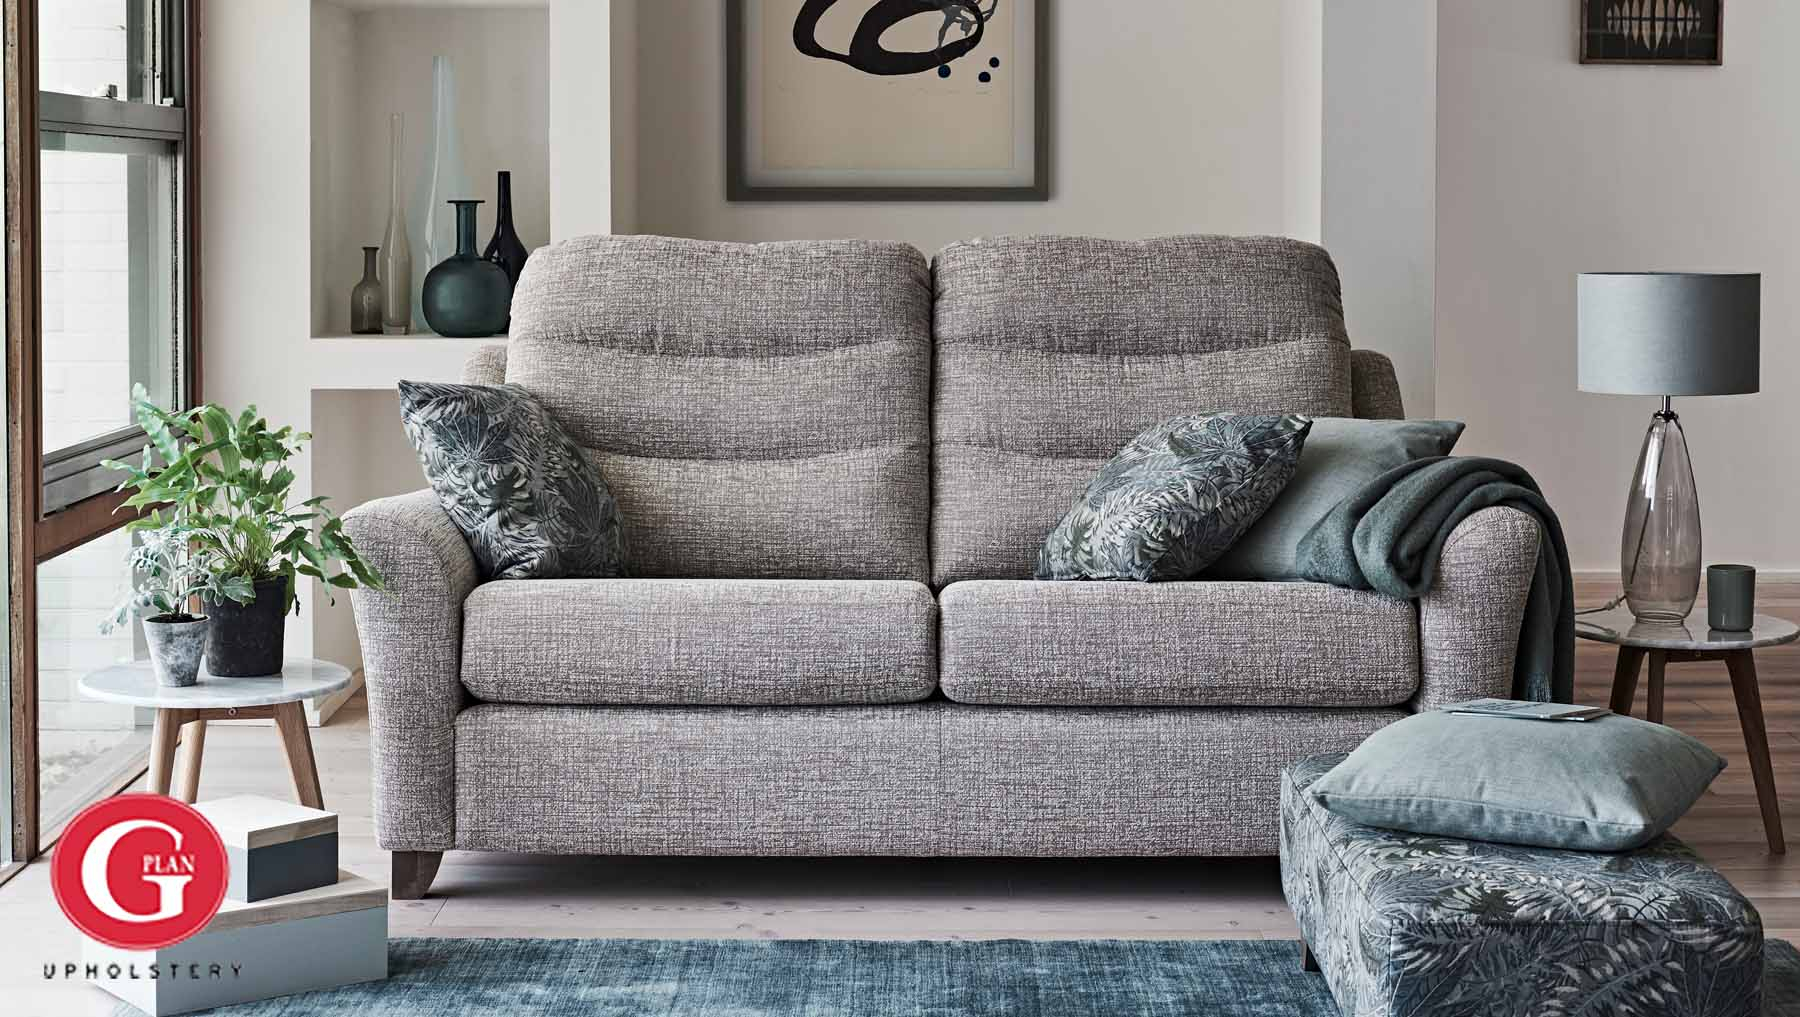 G Plan Tate – Fabric Ranges – Sofas & Chairs | Tr Hayes – Furniture Intended For Tate Ii Sofa Chairs (Image 3 of 20)